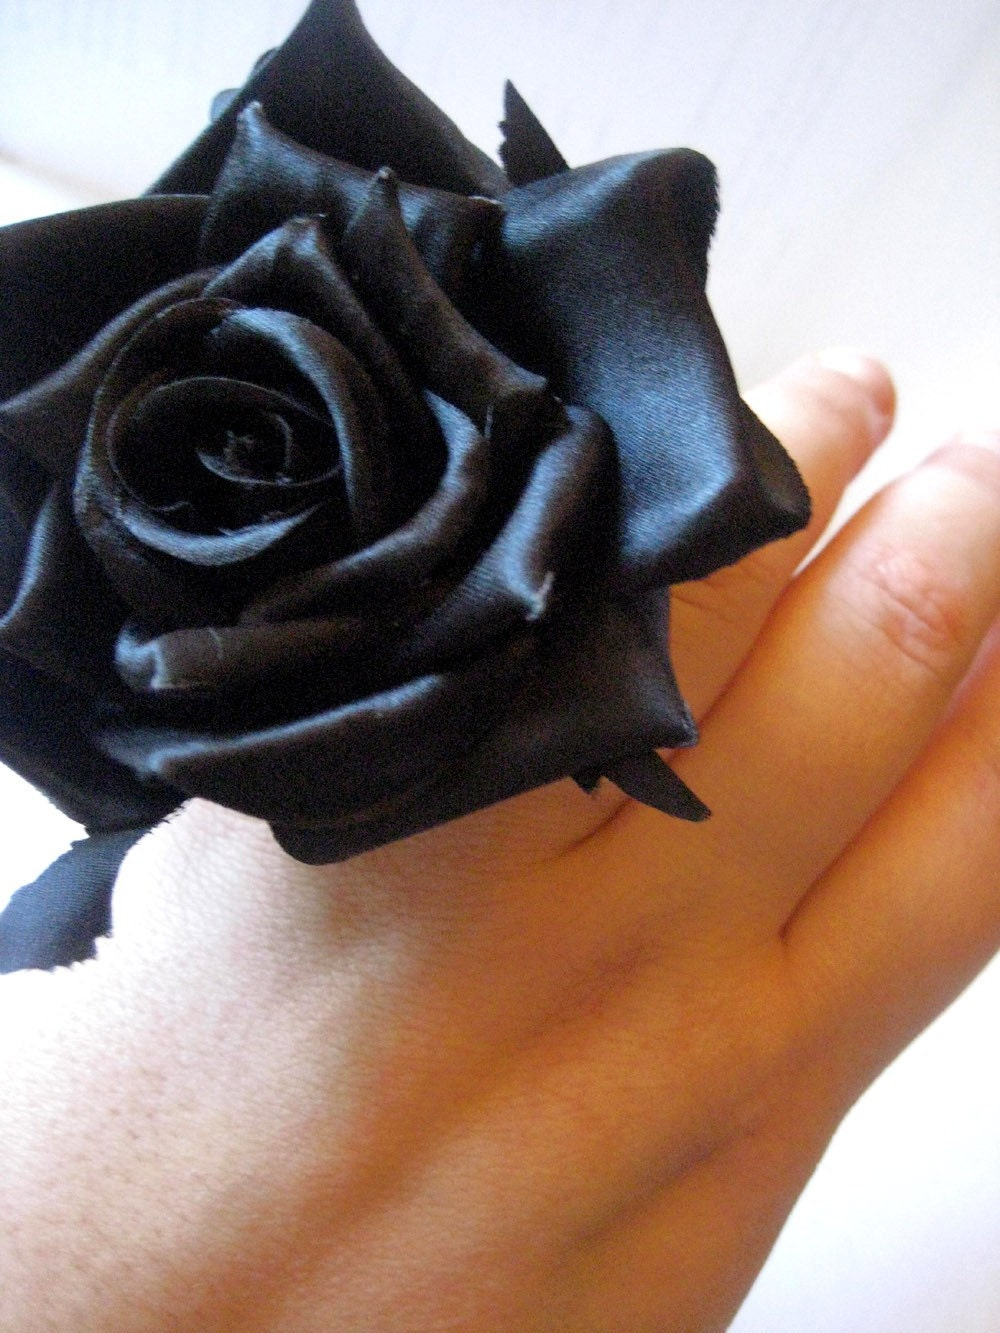 floral BLACK rose statement flower ring by elasticwasteland from etsy.com